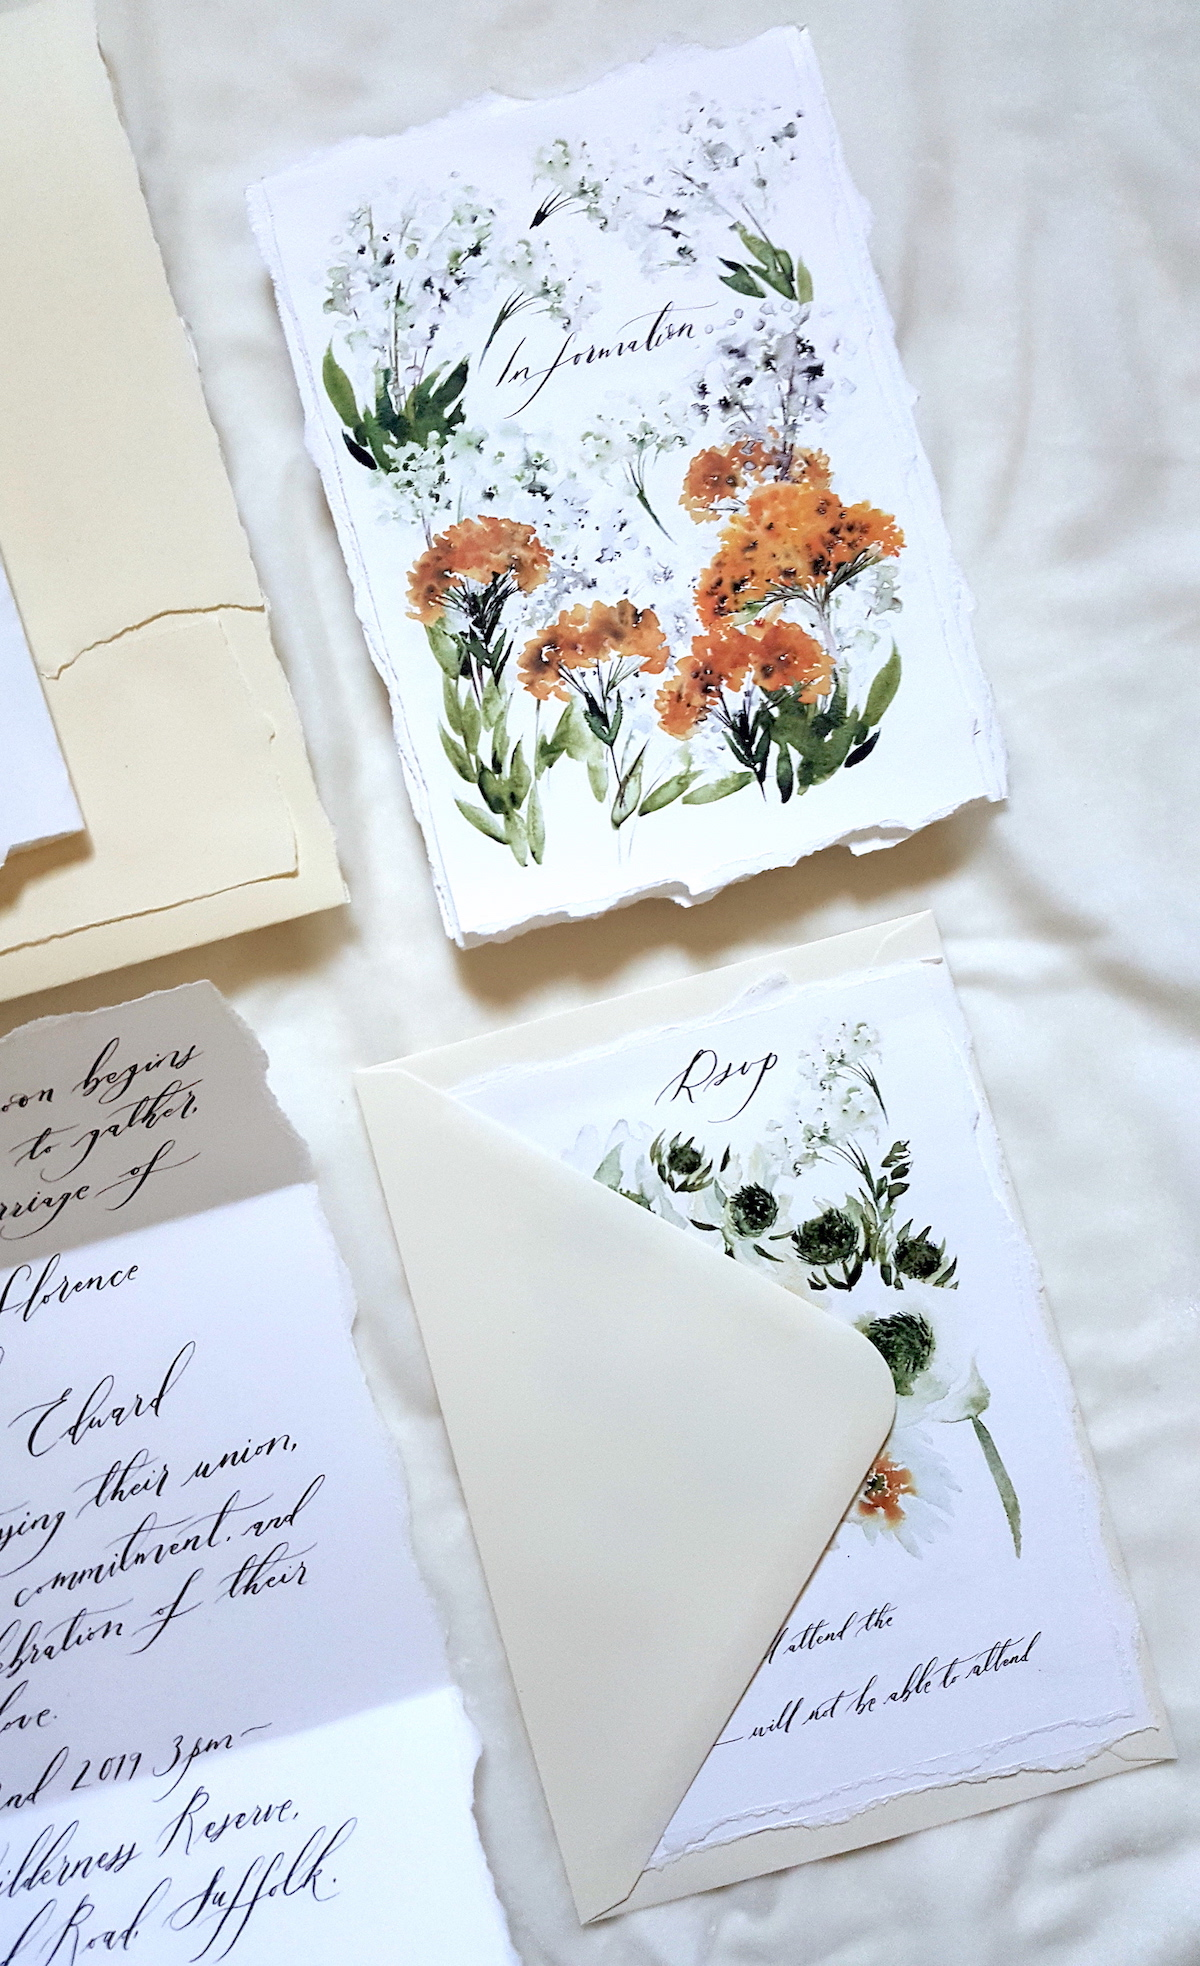 Bespoke Watercolour Wedding Invitations showing information and rsvp cards with floral designs